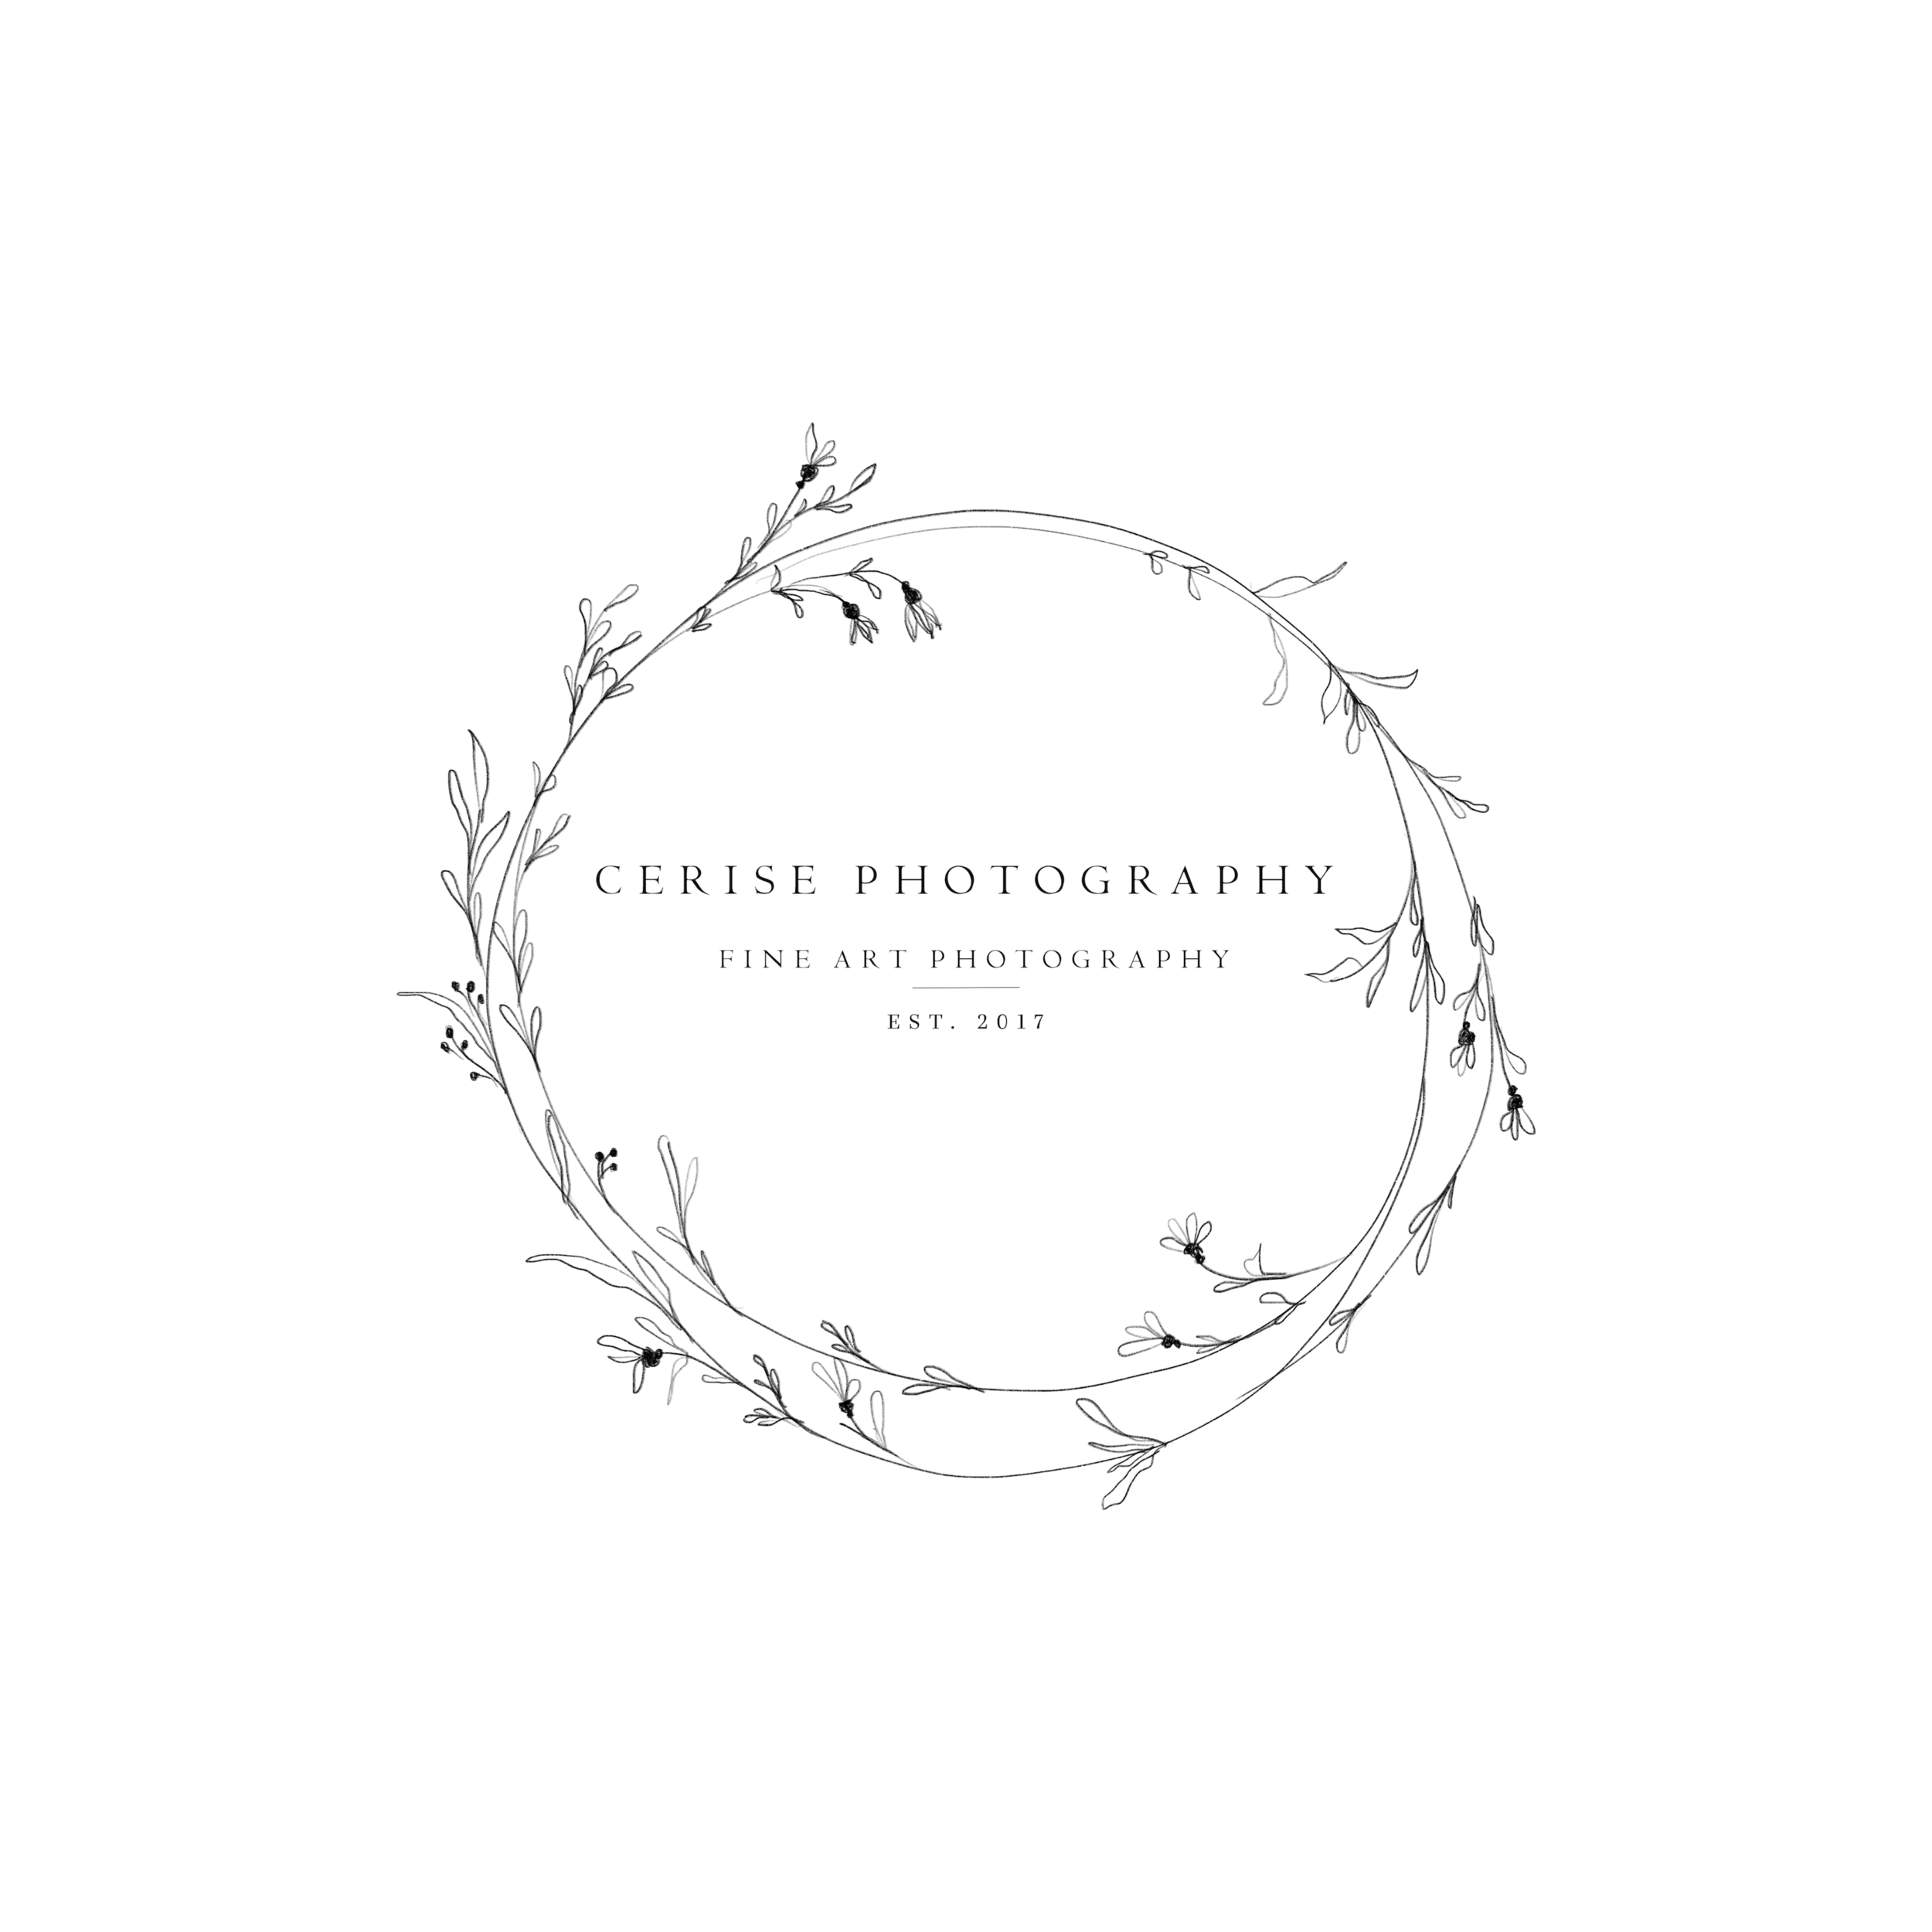 Cerise Photography - Fine Art Portrait Photographywww.cerisephotography.comServices Offered:Wedding Photography, Maternity Photography, Family PortraitureServing:Serving Northern California, Western Pennsylvania, United Kingdom